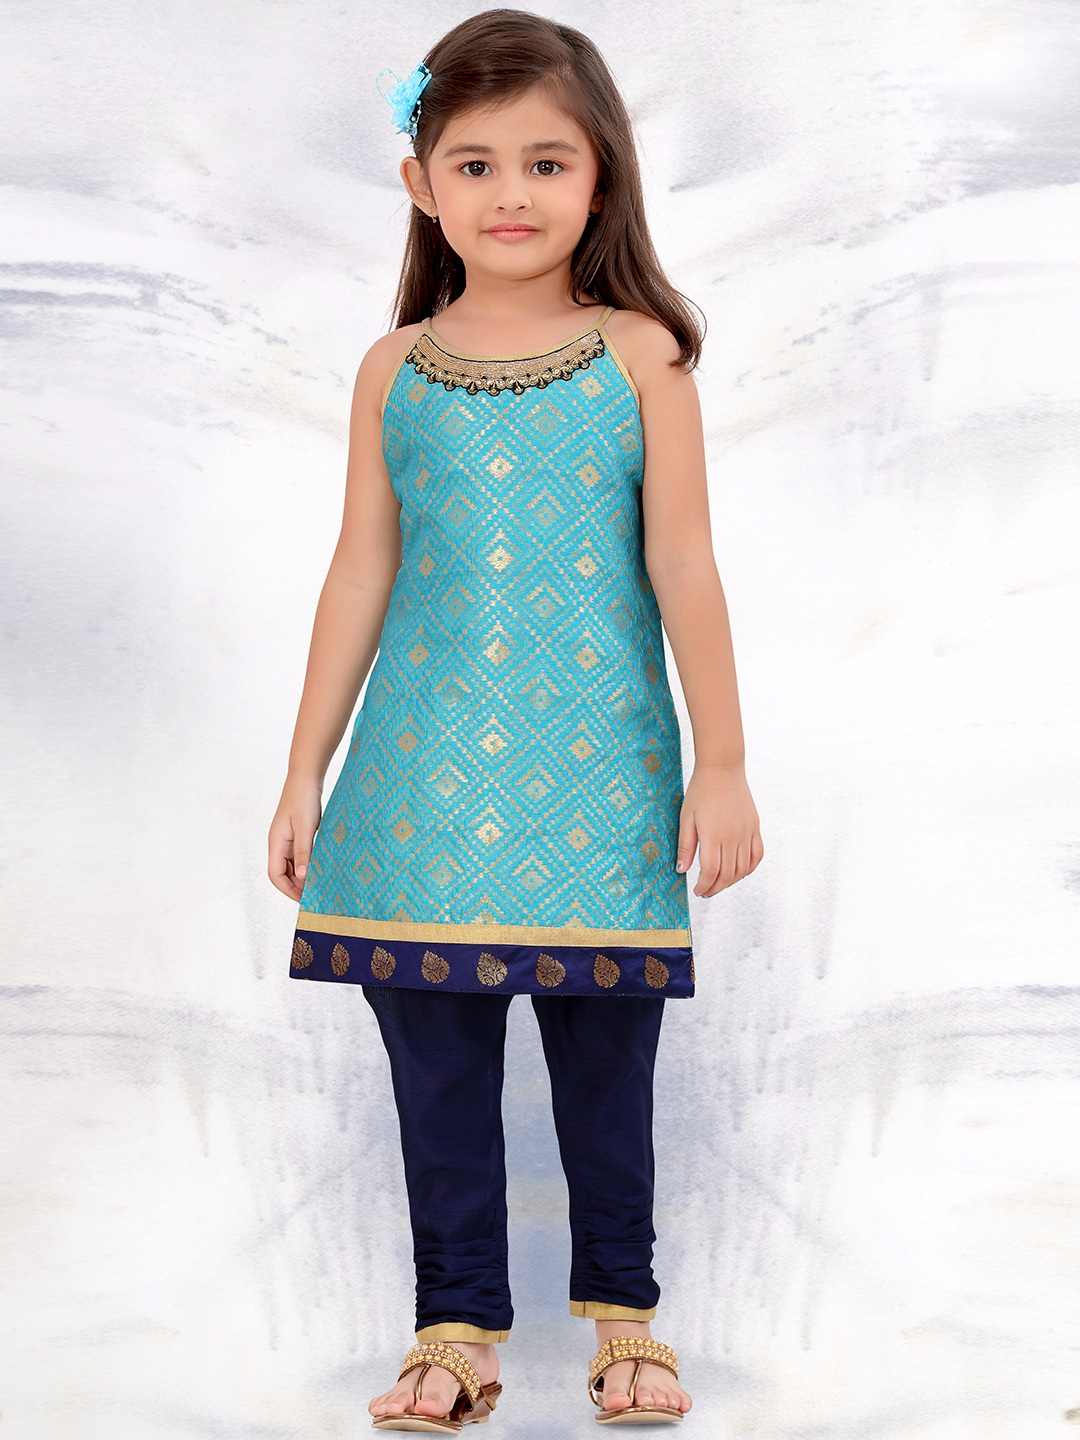 Top Indian wedding style for your little Princess   G3Fashion.com